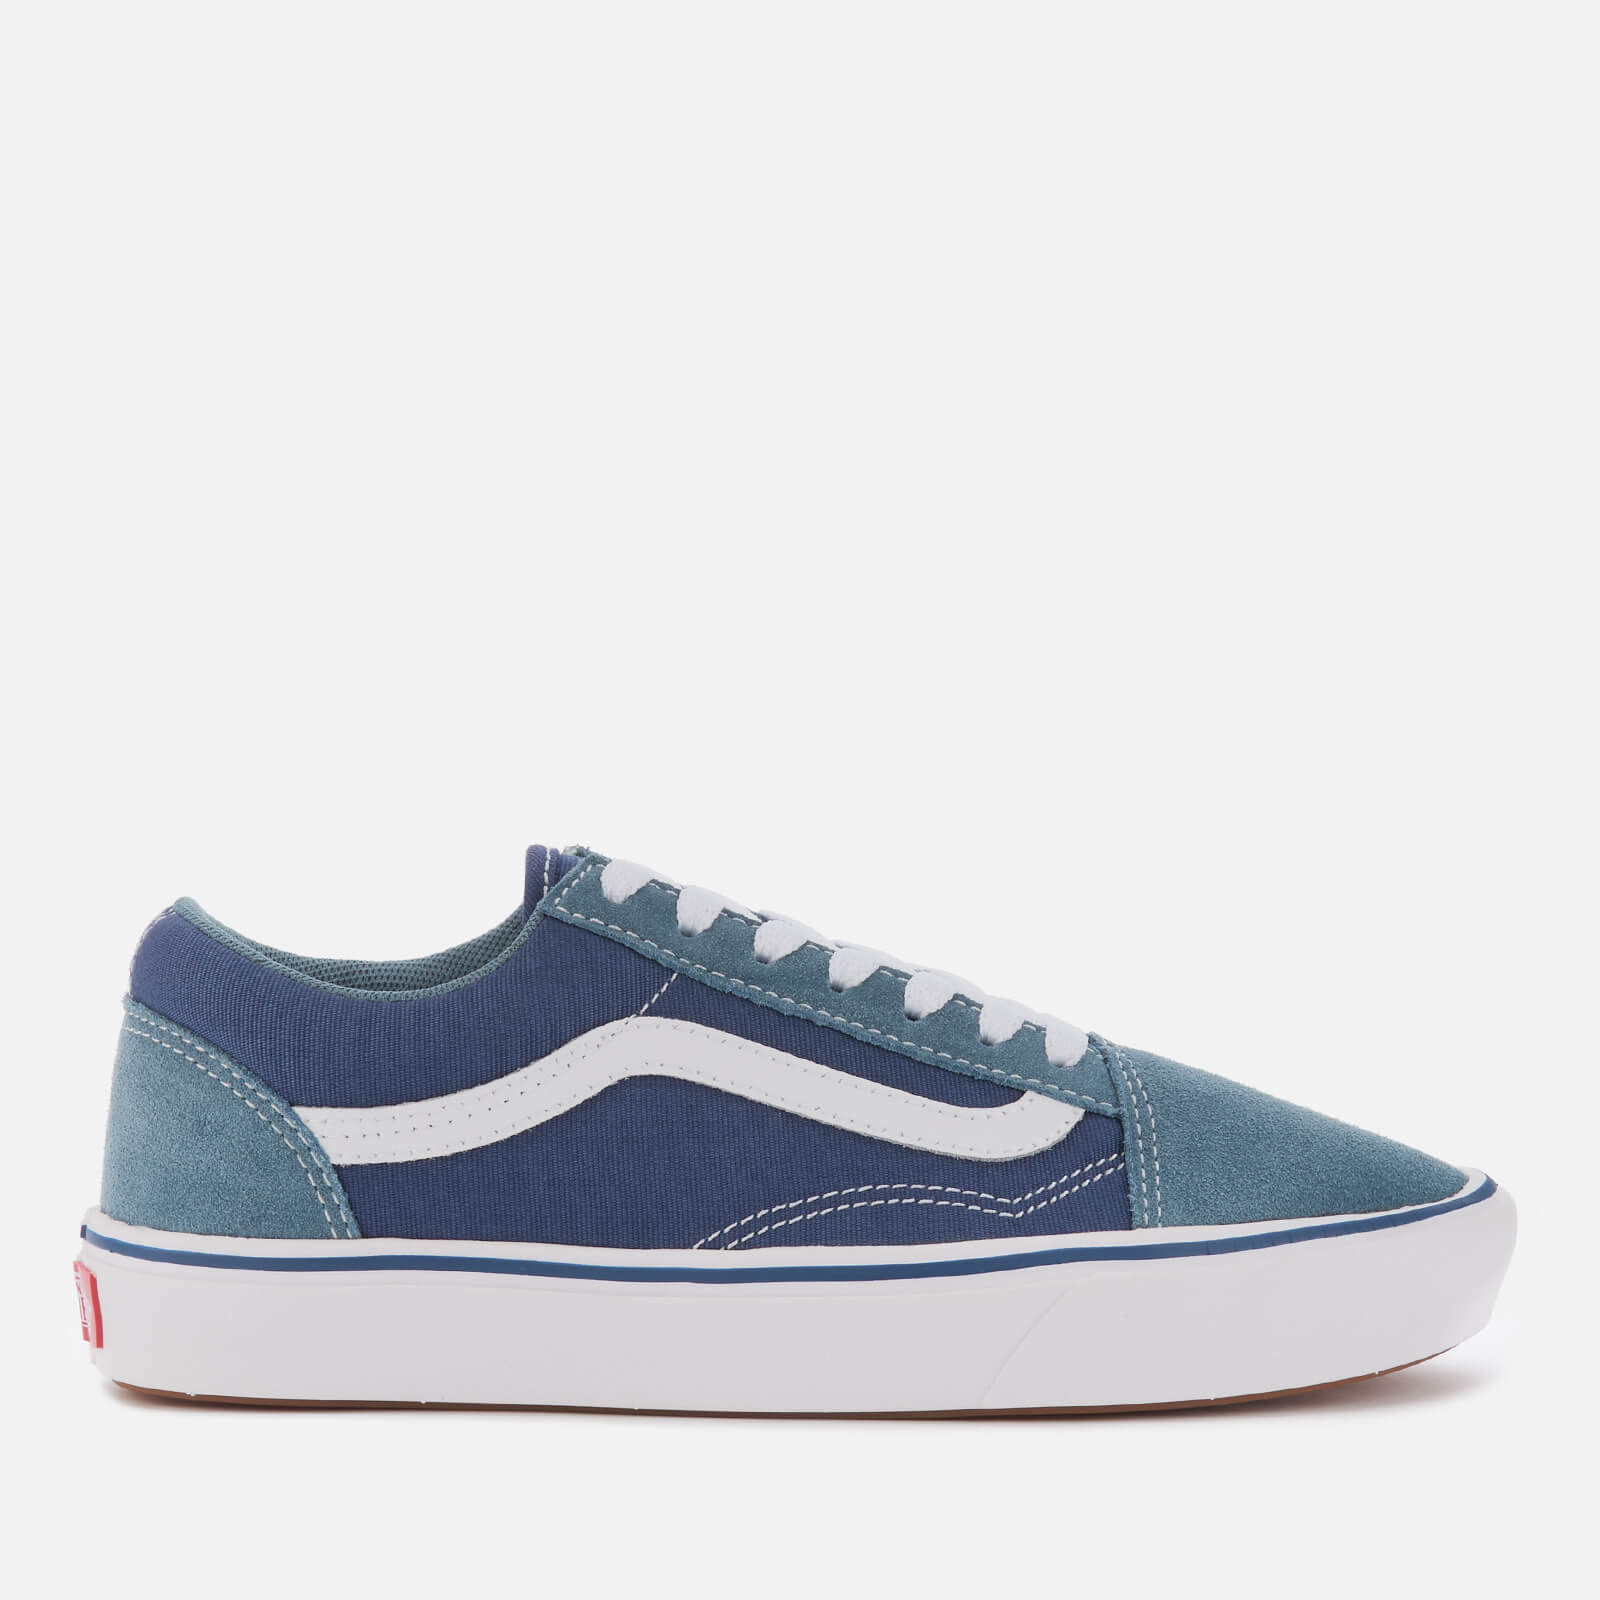 【码全】Vans ComfyCush Suede/Textile Old Skool 滑板鞋